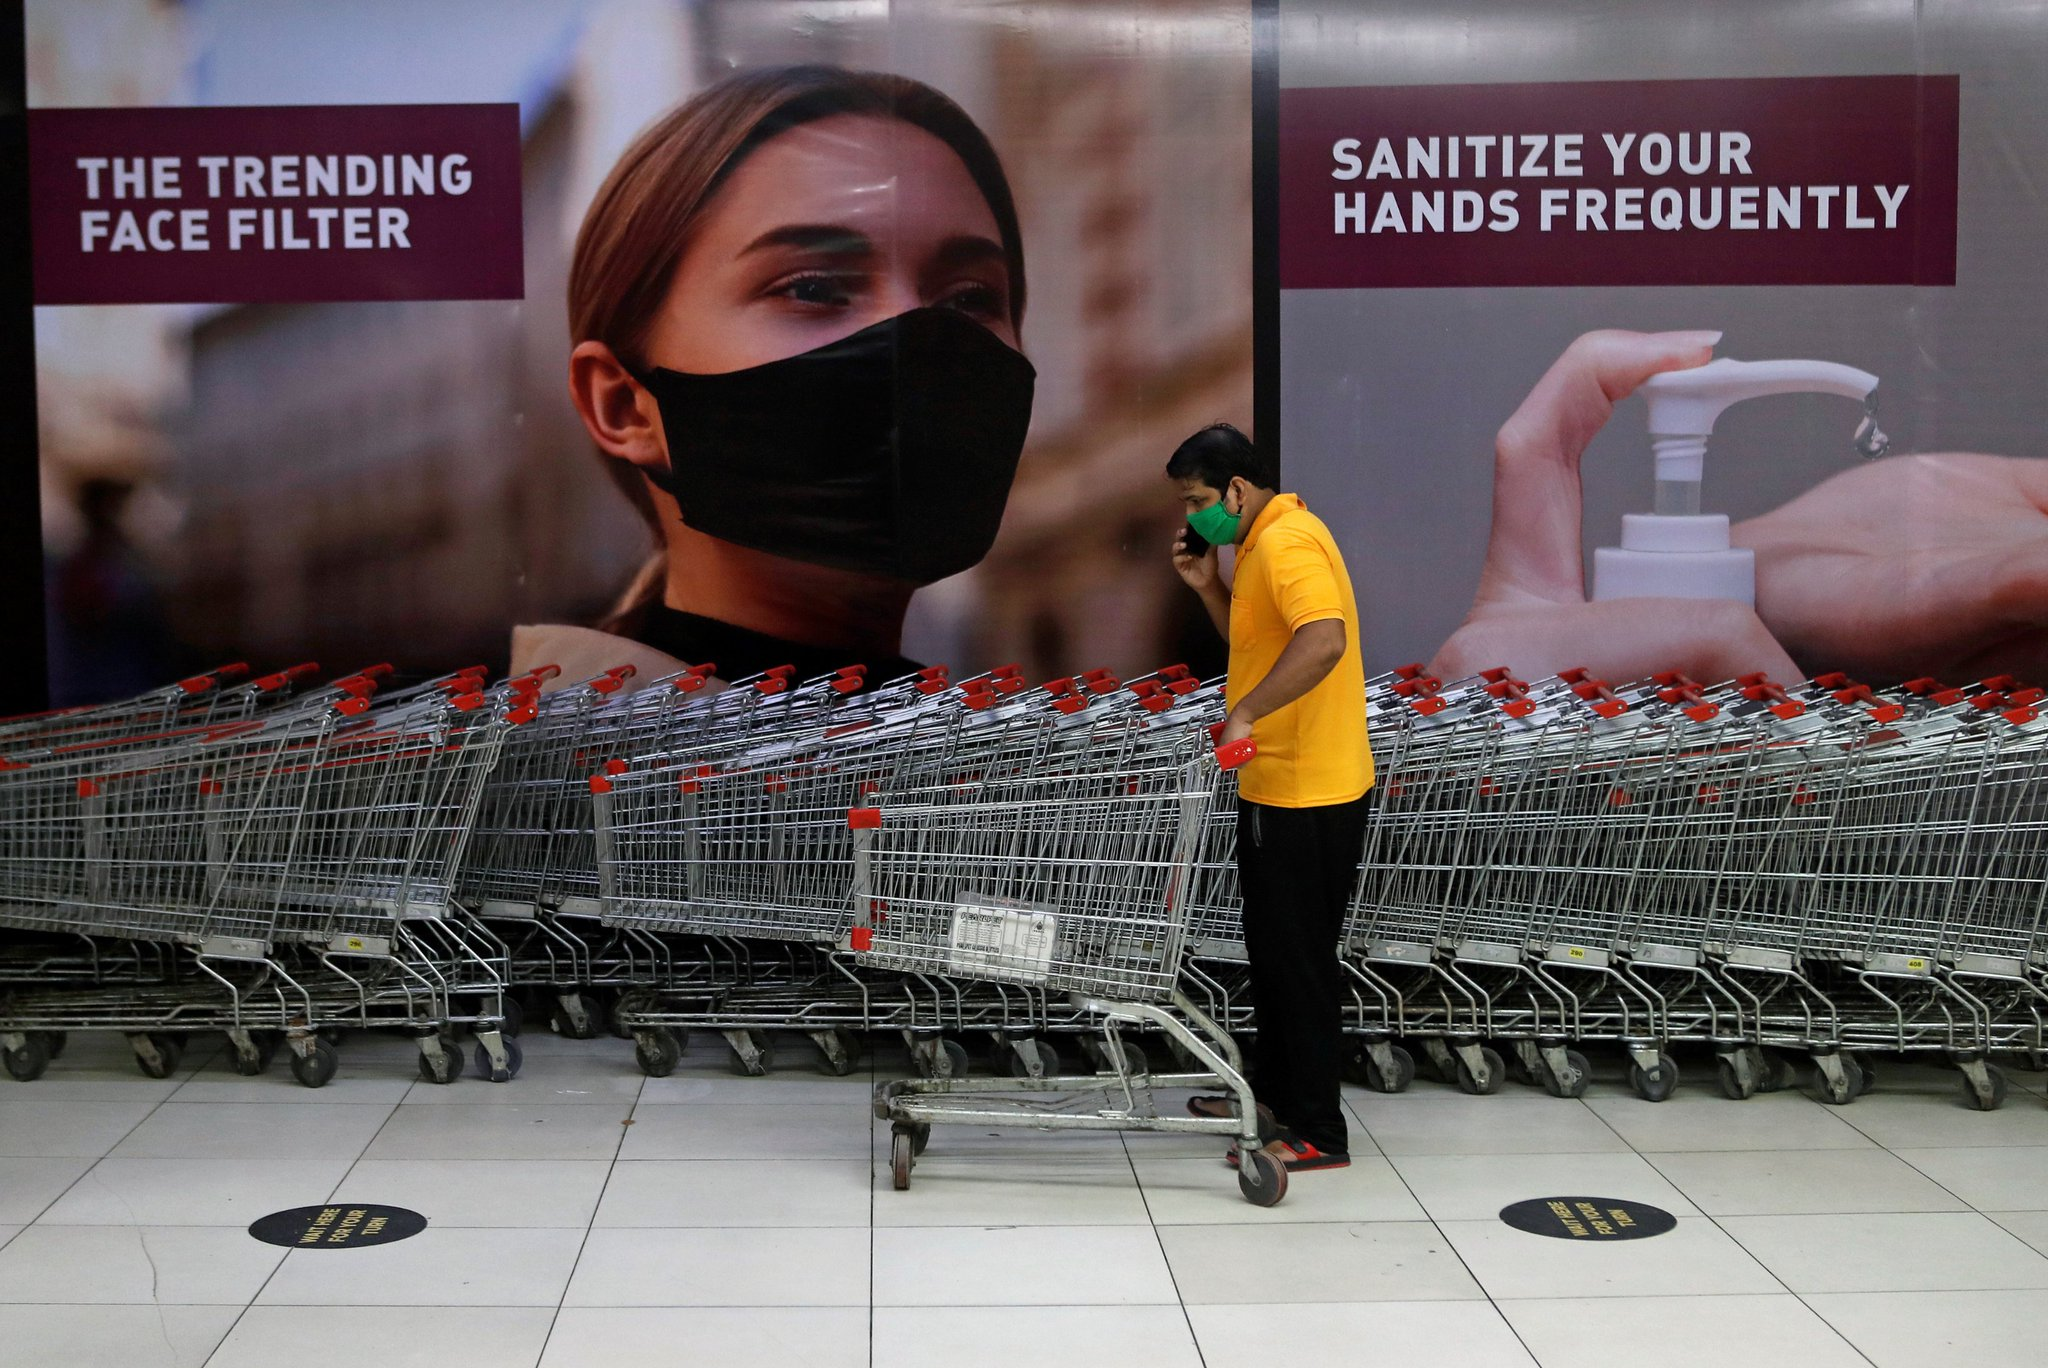 A man wearing a protective mask pushes a shopping trolley inside a mall after it reopened following the coronavirus disease (COVID-19) outbreak, in Mumbai, August, 5, 2020. REUTERS/Francis Mascarenhas